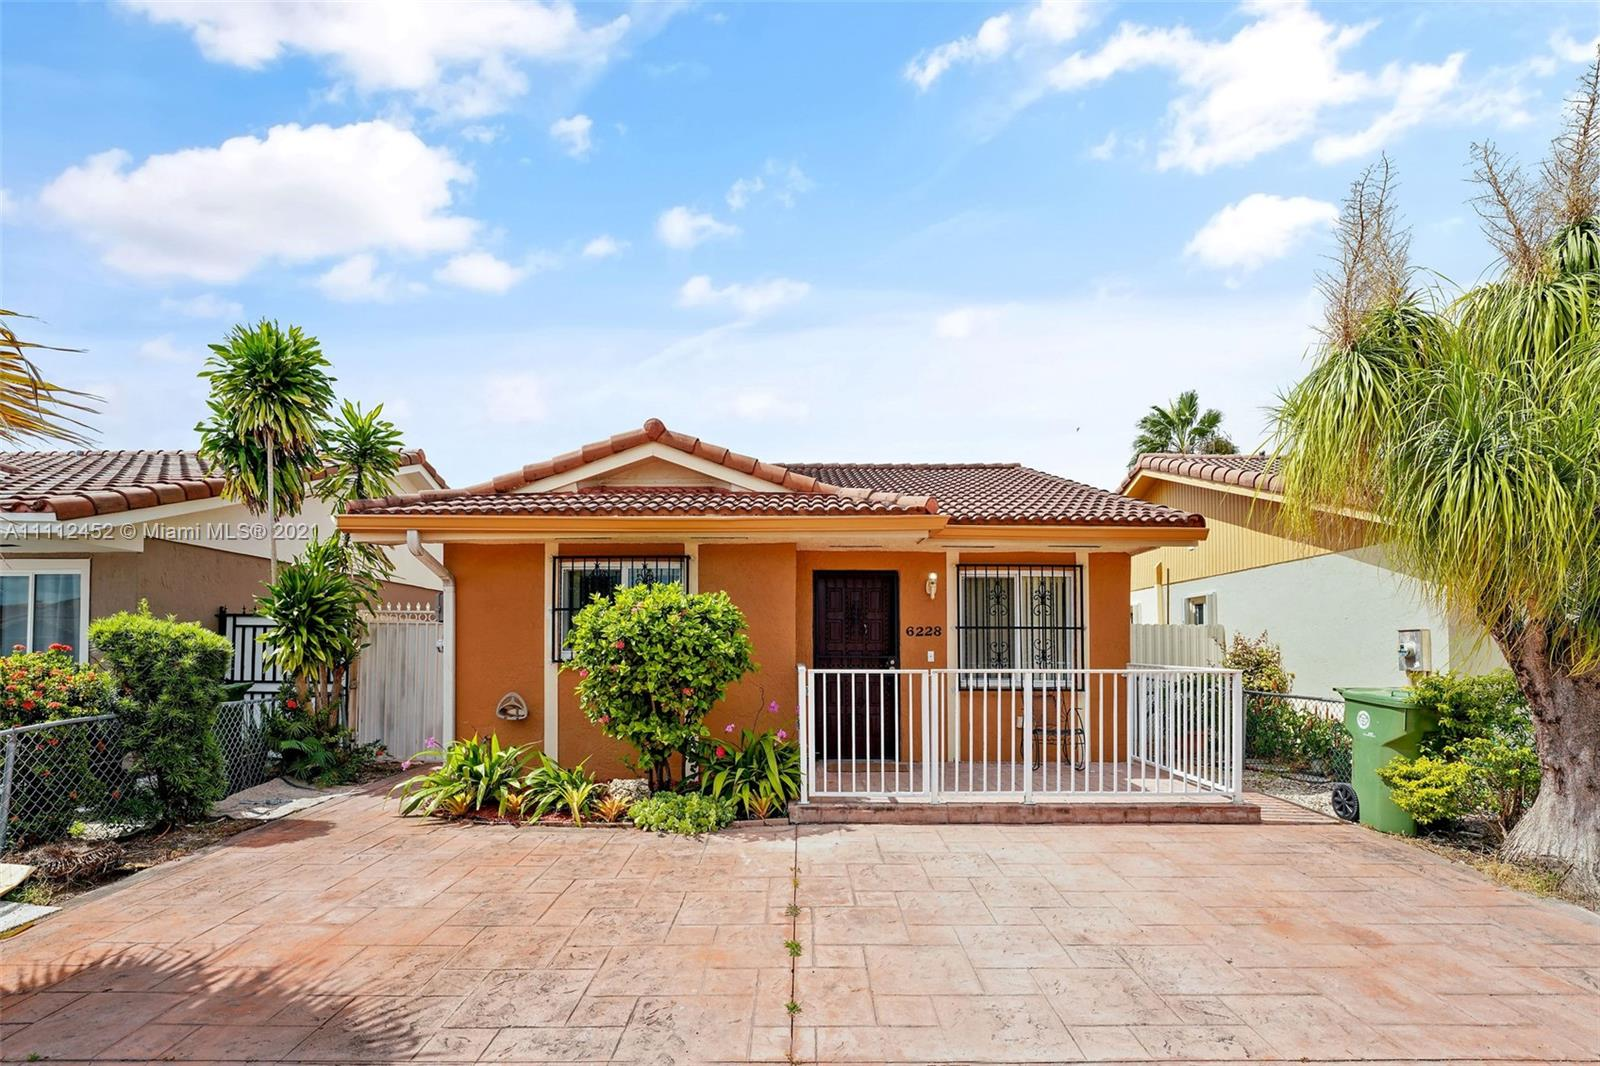 Single Family Home For Sale 2ND ADDN TO BARACOA1,274 Sqft